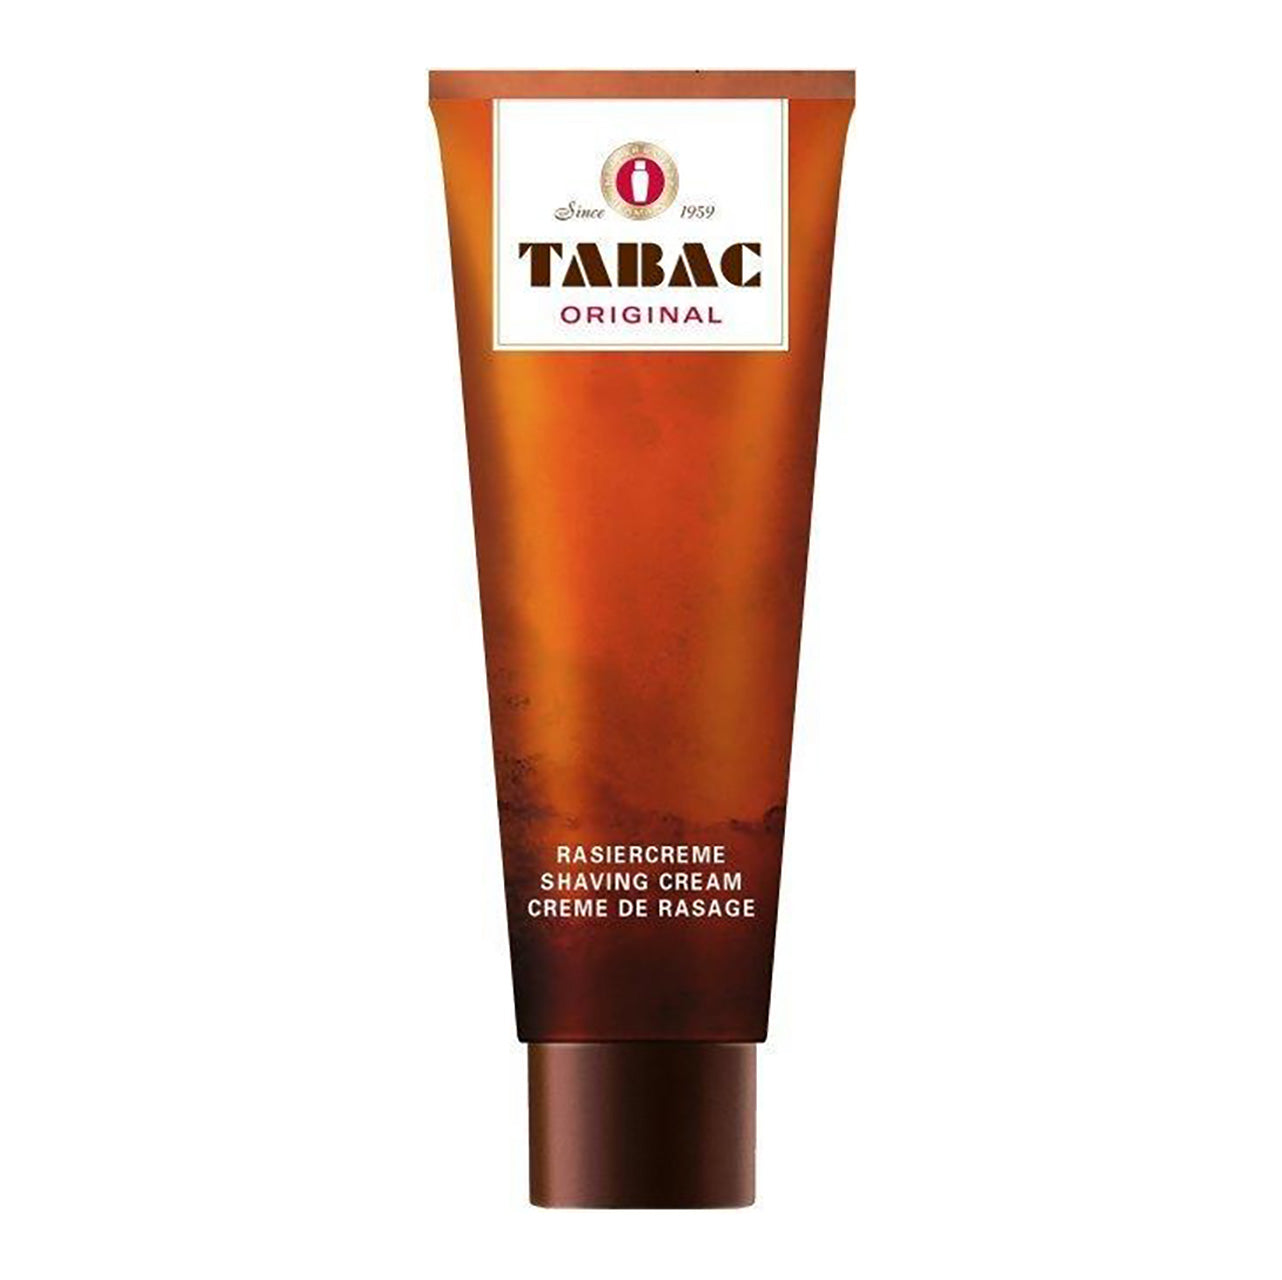 Tabac Original Shaving Cream Tube